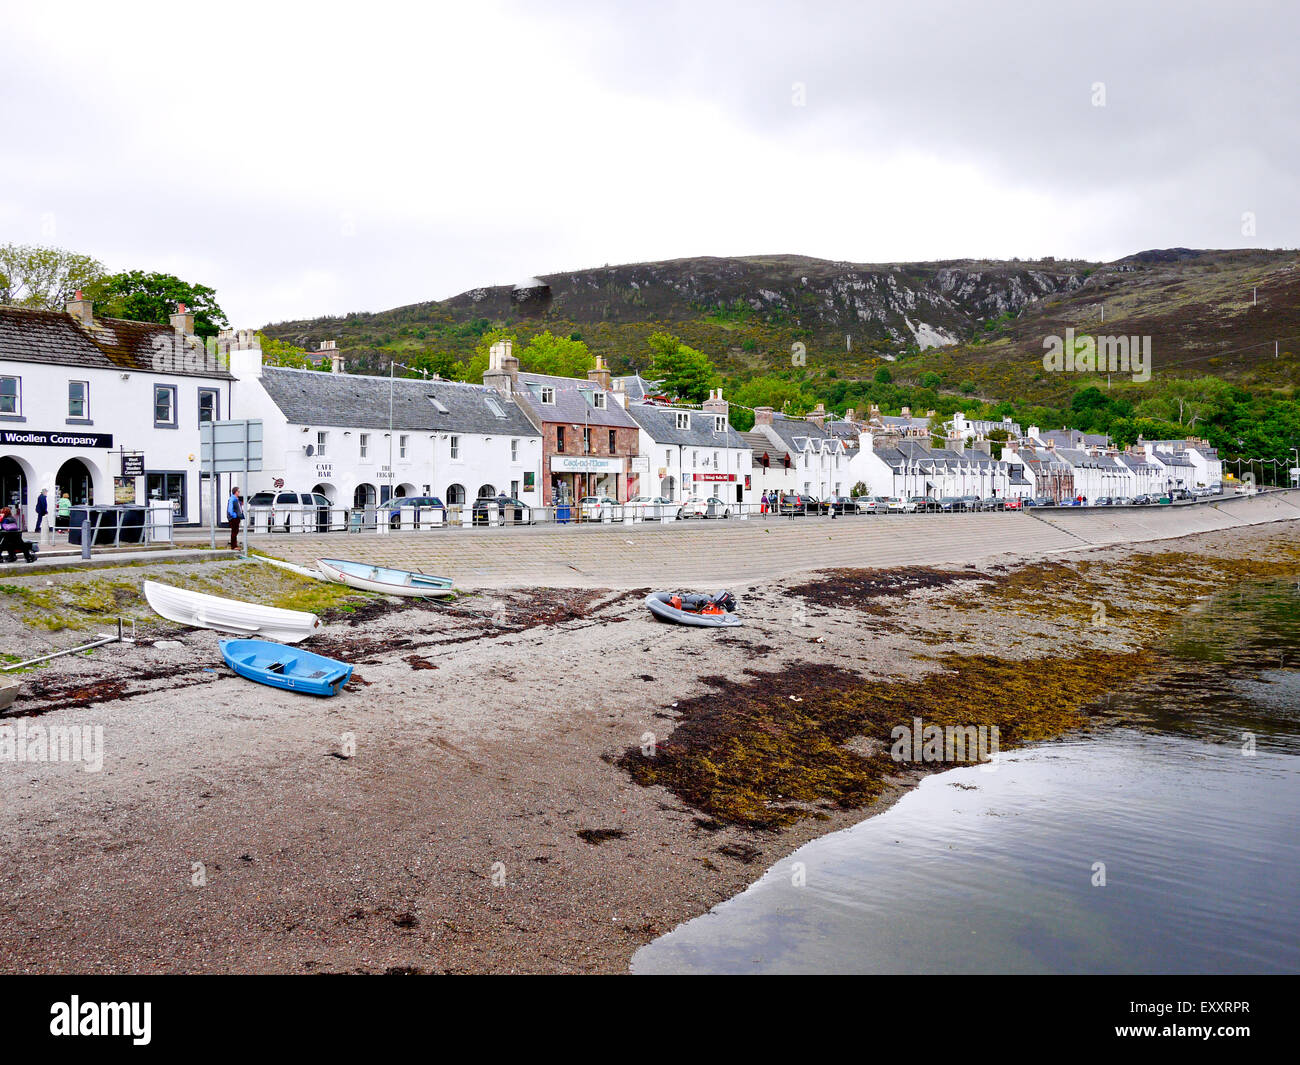 Ullapool Harbour Front, Ullapool, Wester-Ross, Scotland, UK - Stock Image